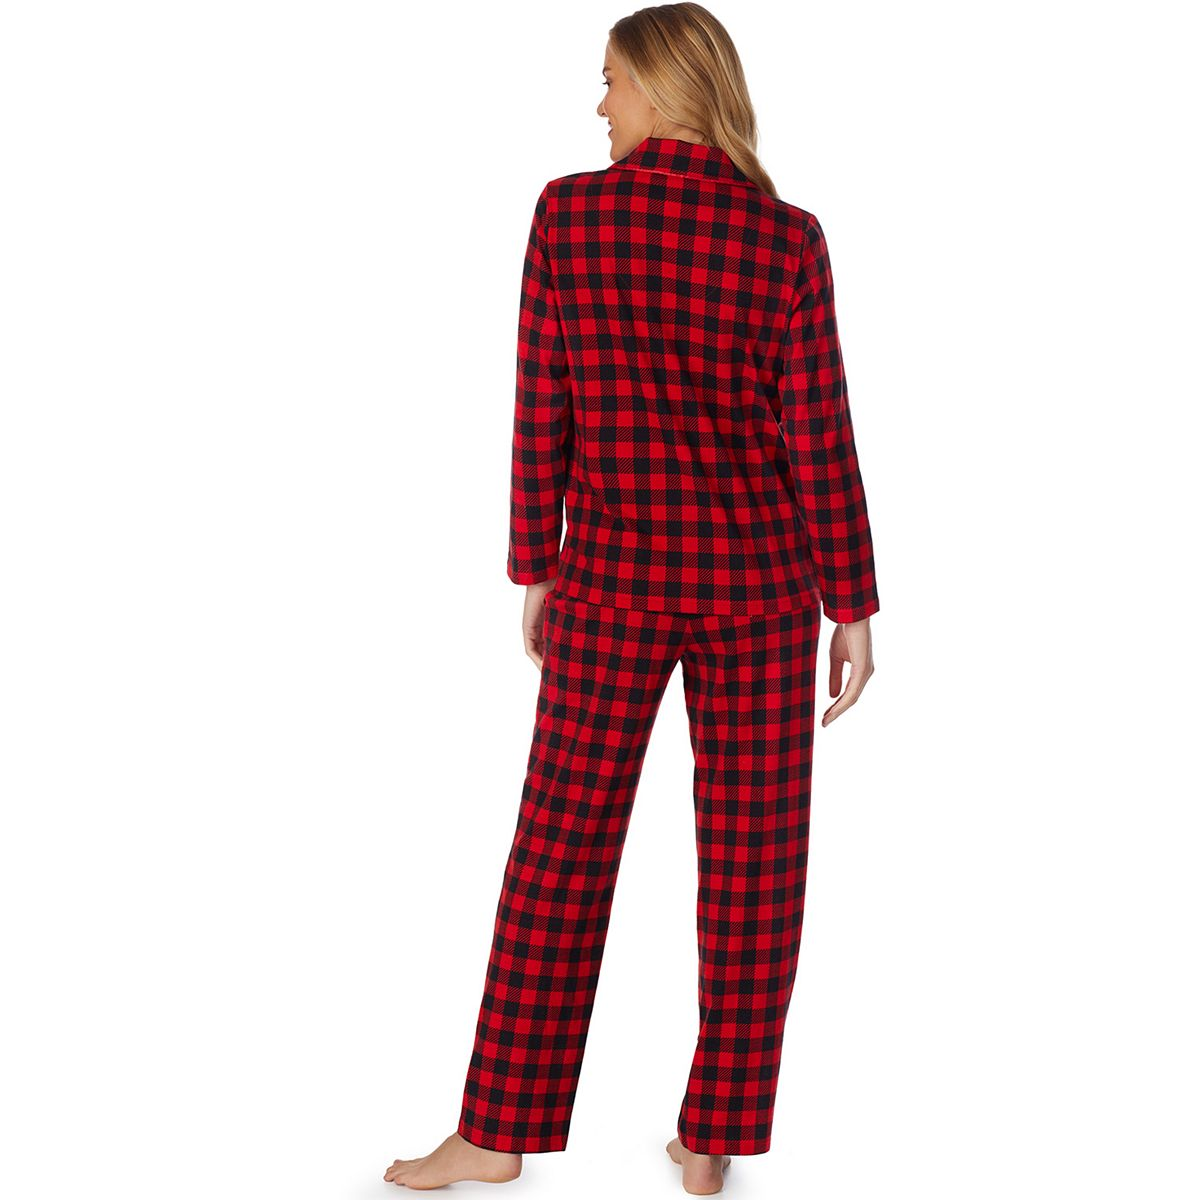 Women's Jammies For Your Families® Cool Bear Plaid Shirt & Pants Pajama Set by Cuddl Duds xvslg